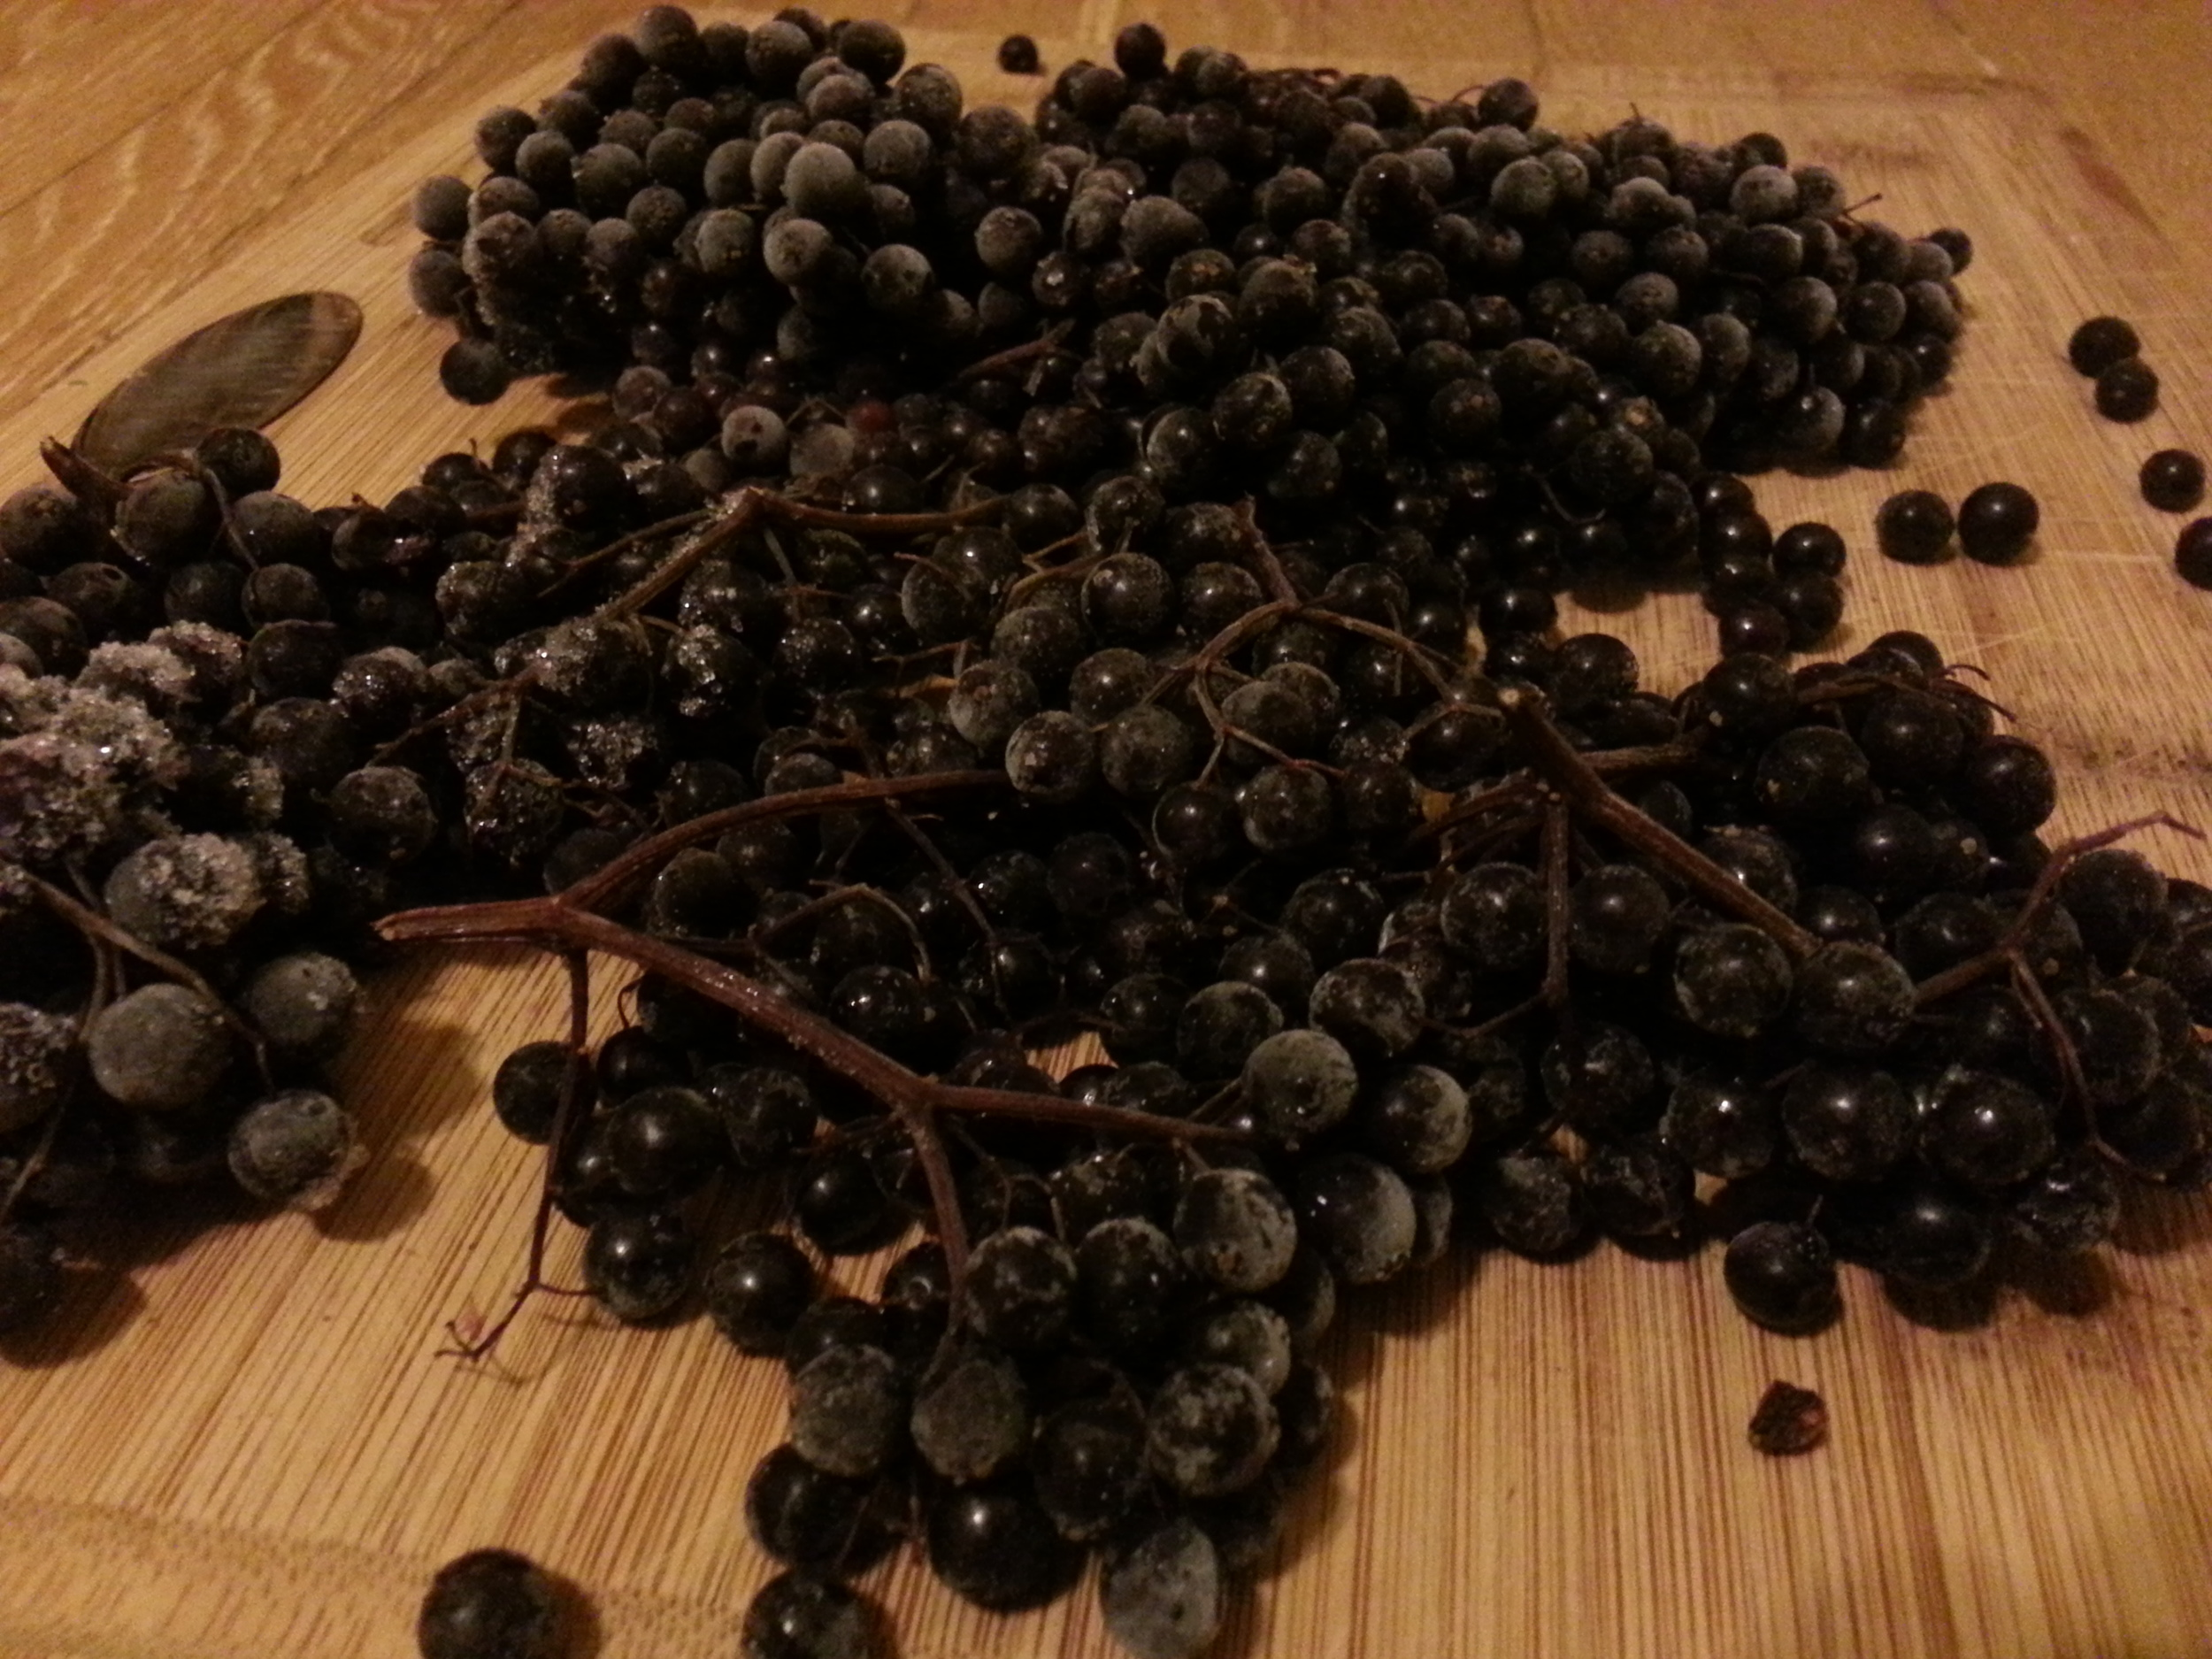 Elderberries. I froze these in the summer and made an oxymel from them in November!